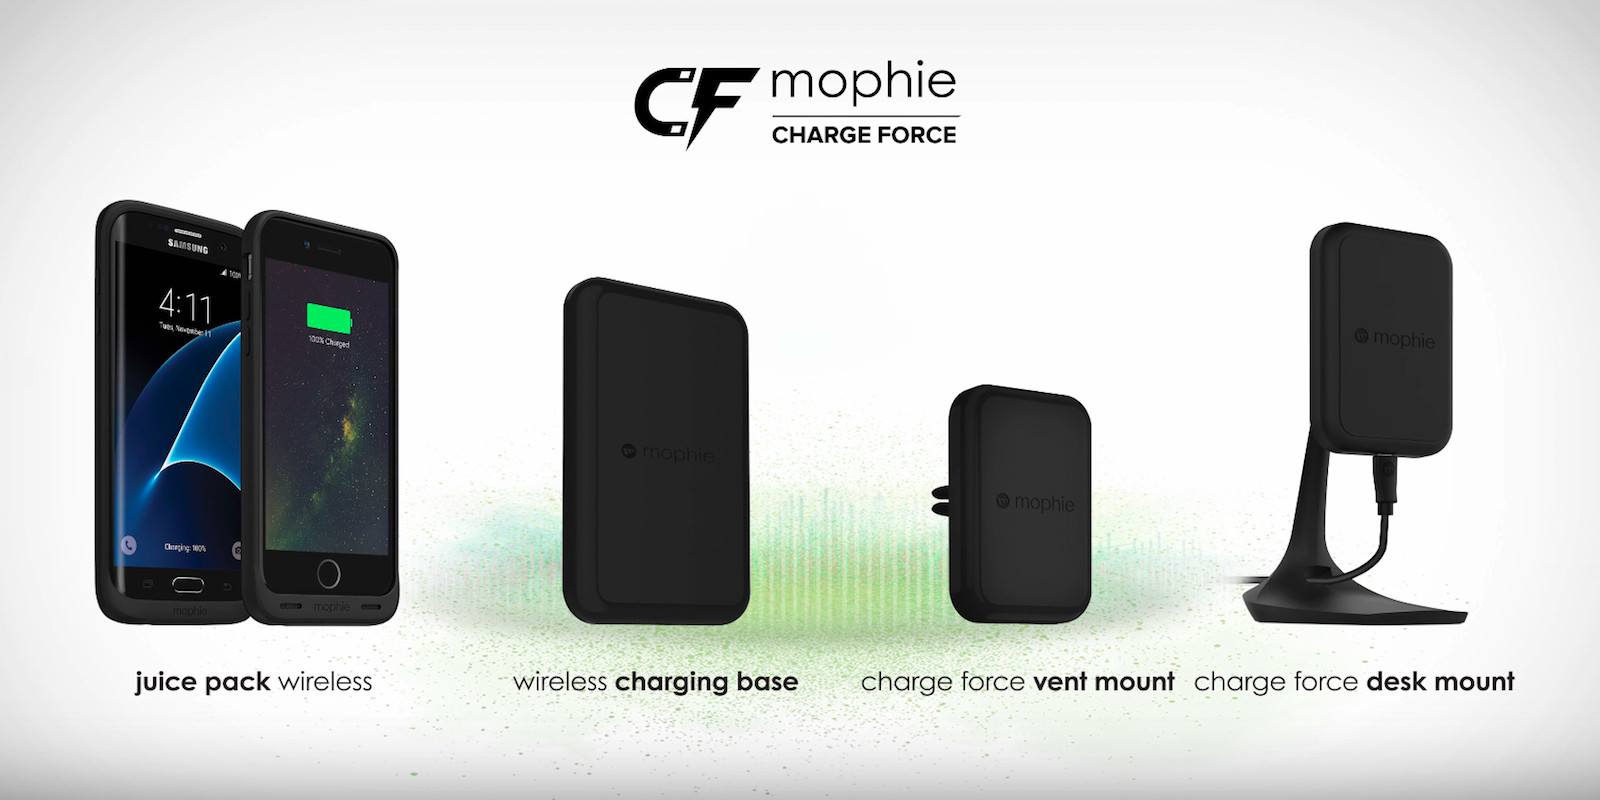 Mophie Releases An Iphone Battery Case With Wireless